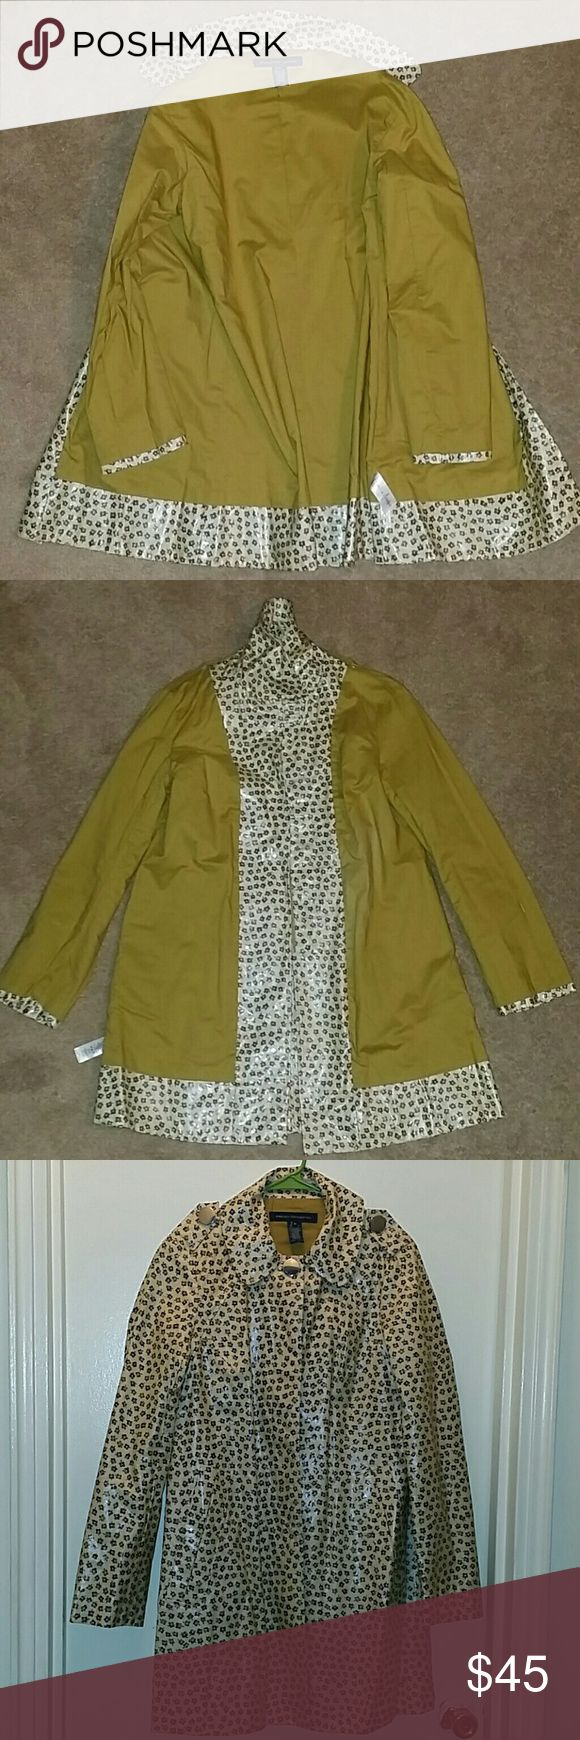 French Connection Flower Print Rain Coat Small print flowers on a deep yellowish cream base rain jacket. Gorgeous contrast mustard lining, large round silver buttons. Tab button detail on shoulder. Hidden buttons down front except first top one. Coat hits knee leghth. Slight A line shape. New, never worn, without tags. French Connection Jackets & Coats Trench Coats